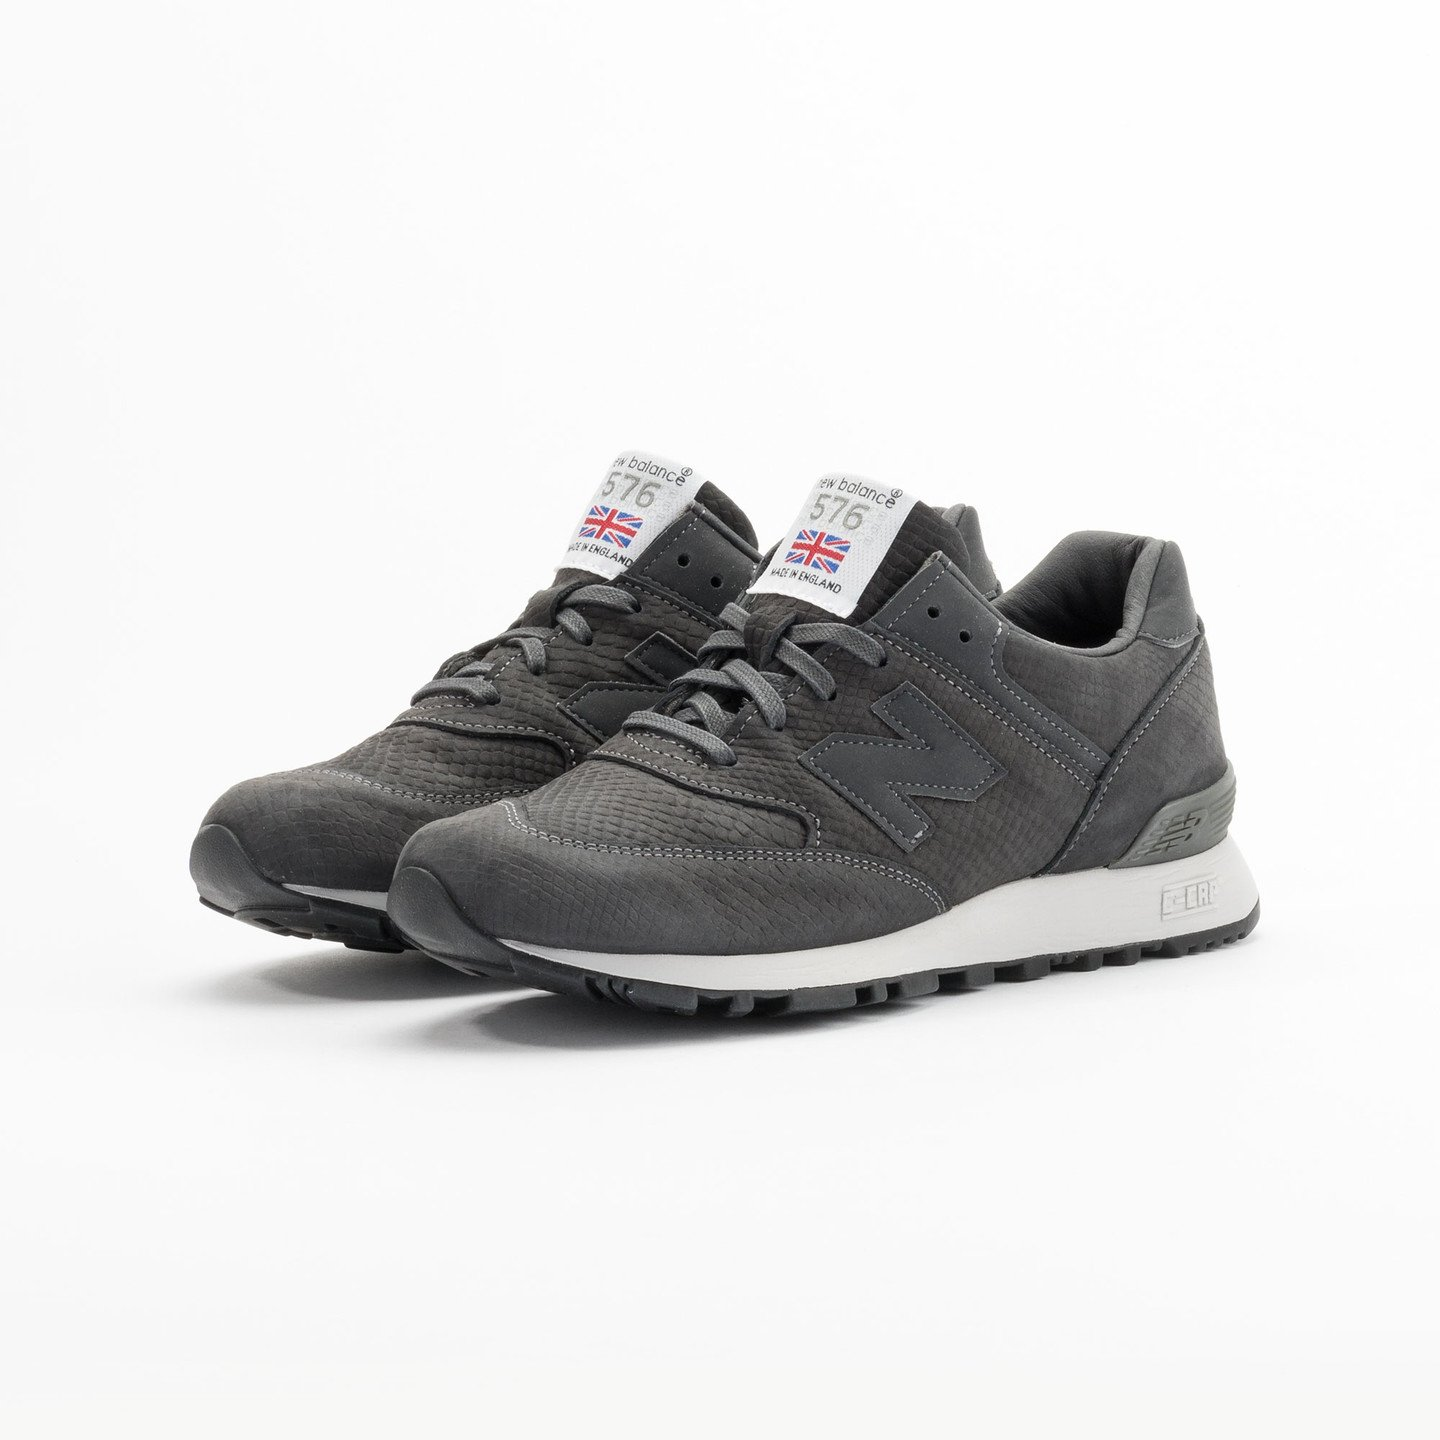 New Balance W576 NRG Made in England Dark Grey W576NRG-37.5